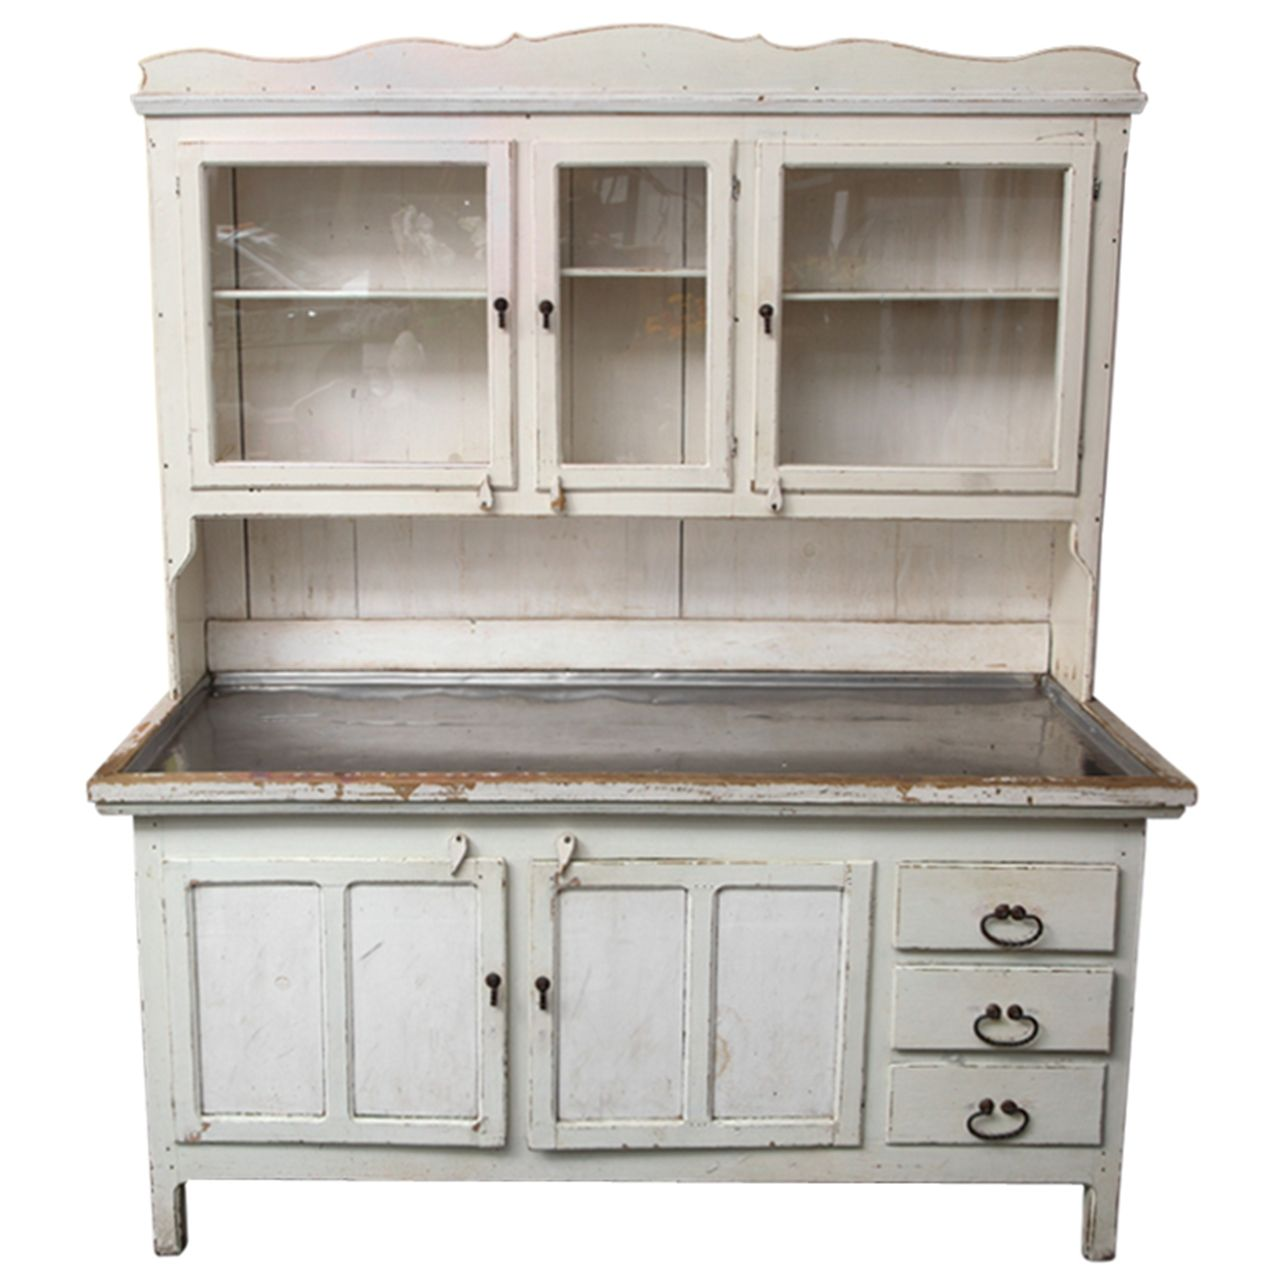 1stdibs   Vintage 20's Mexican Apothecary Cabinet   Home ...